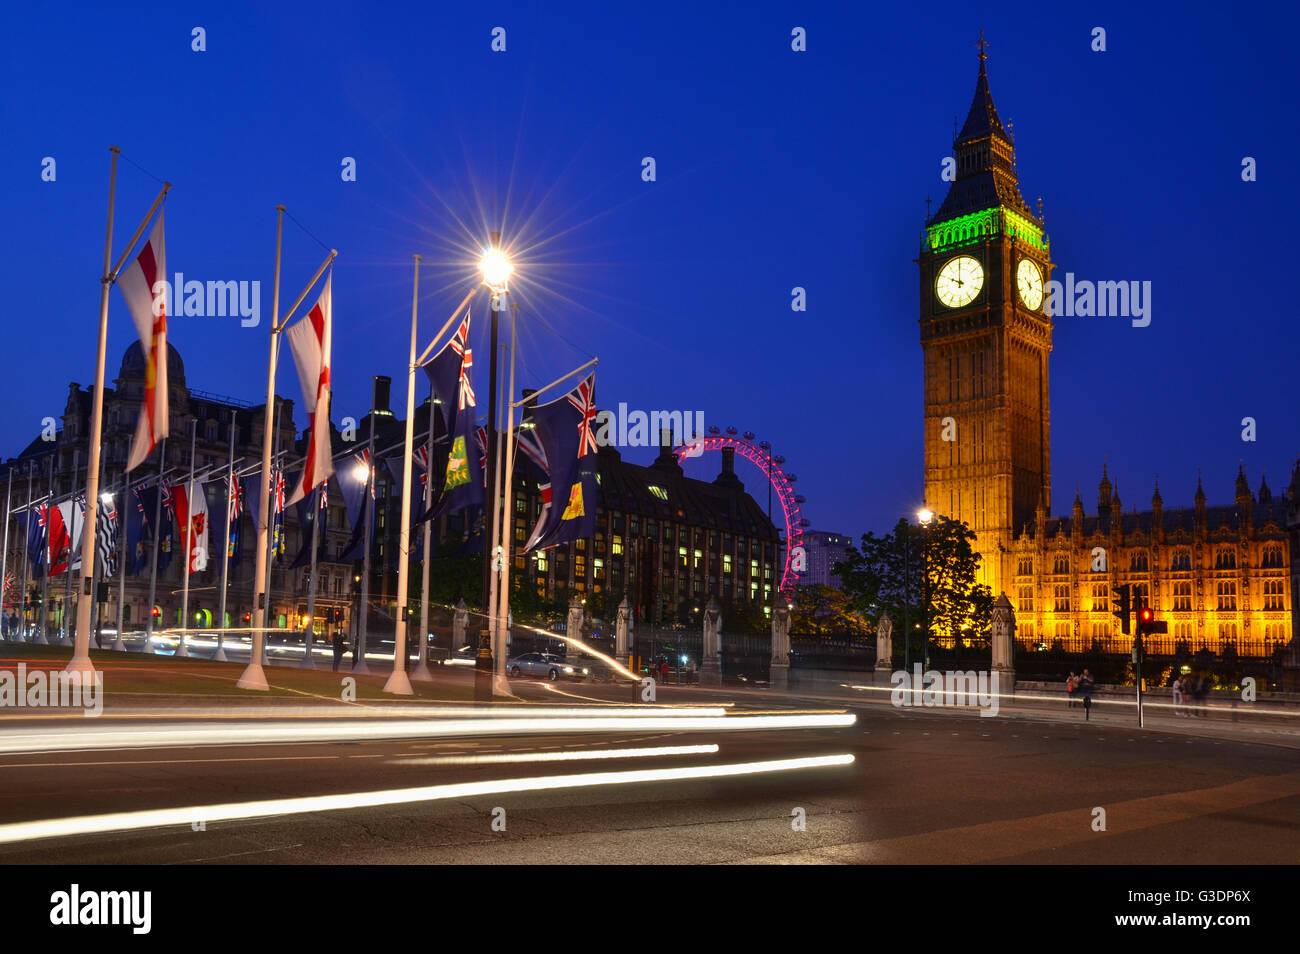 Big Ben, London, England, UK - Stock Image